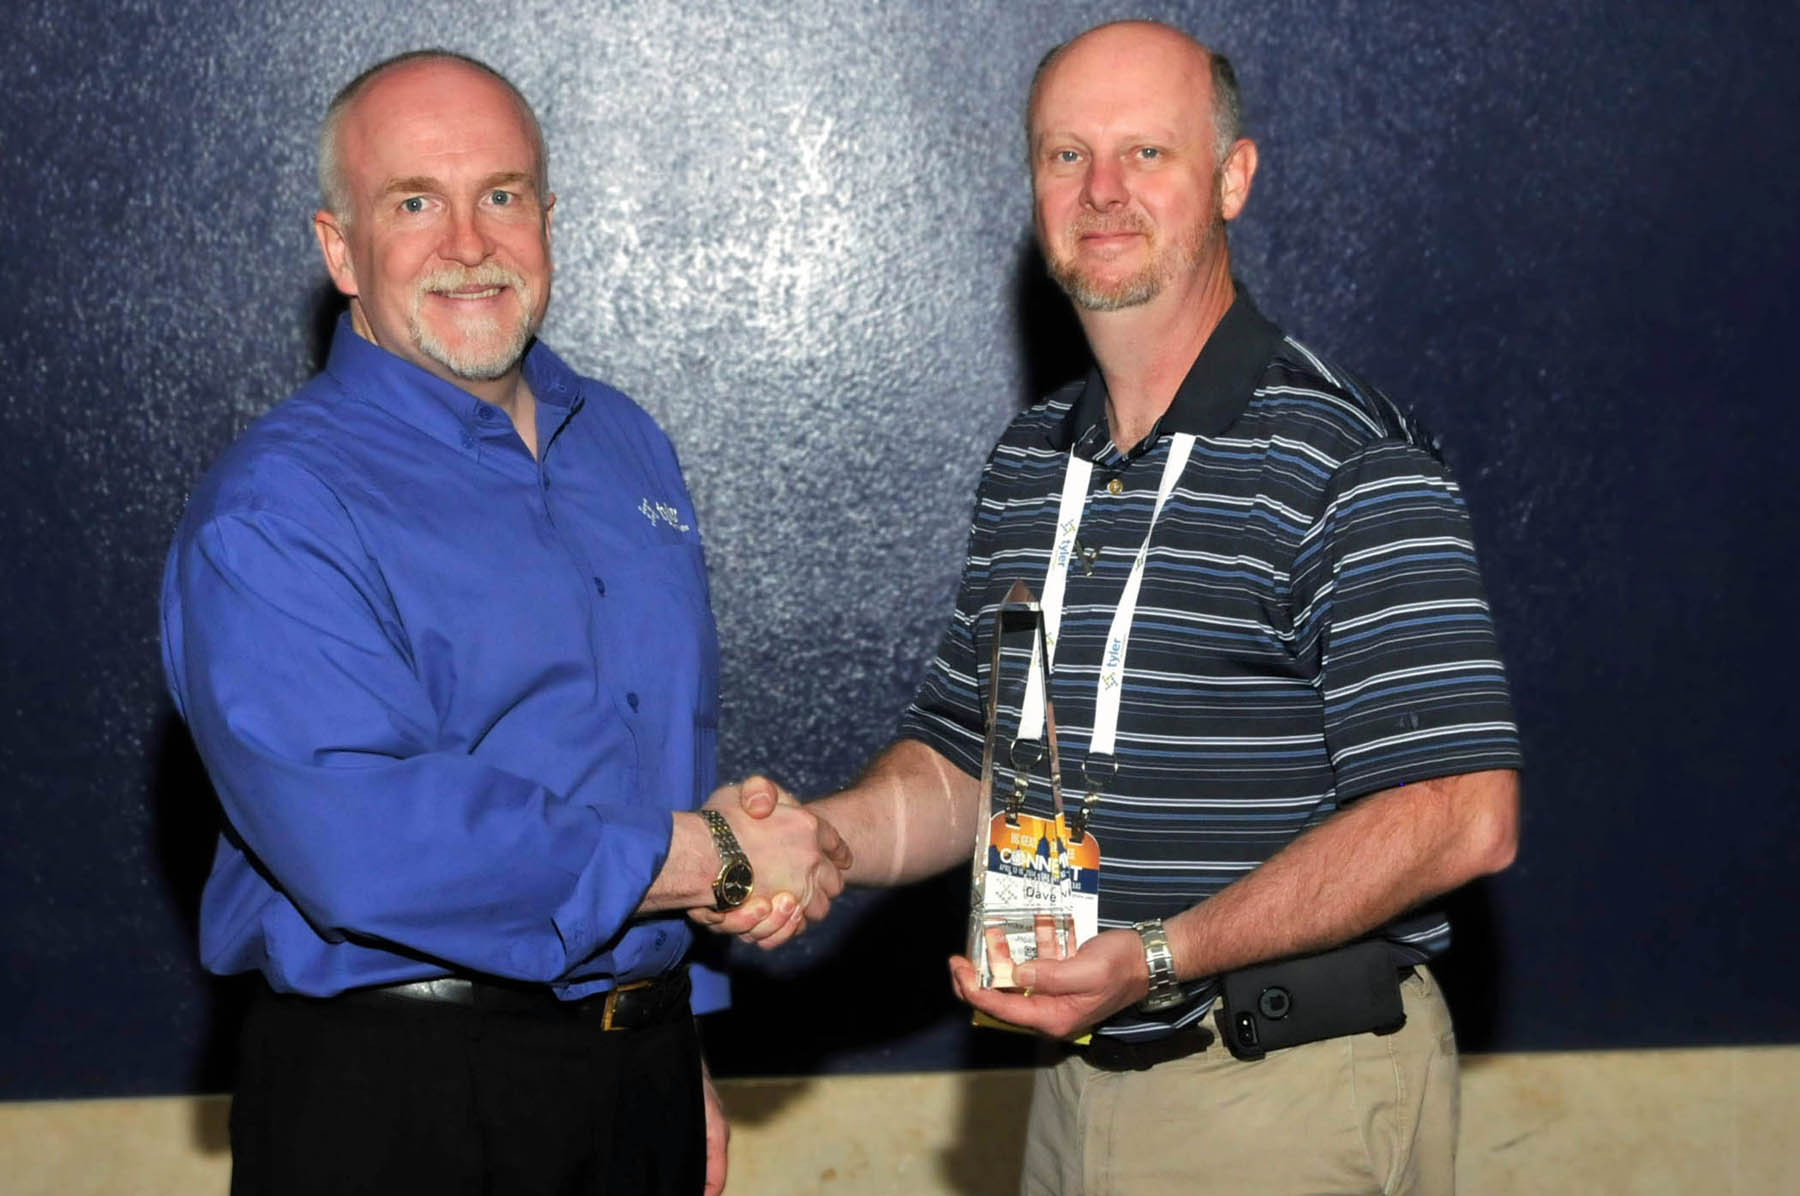 David Pettit, director of transportation of Missouri's Joplin Schools, accepts a Tyler Excellence Award from Ted Thien, senior vice president and general manager of Tyler's Versatrans solution. (Photo: Business Wire)